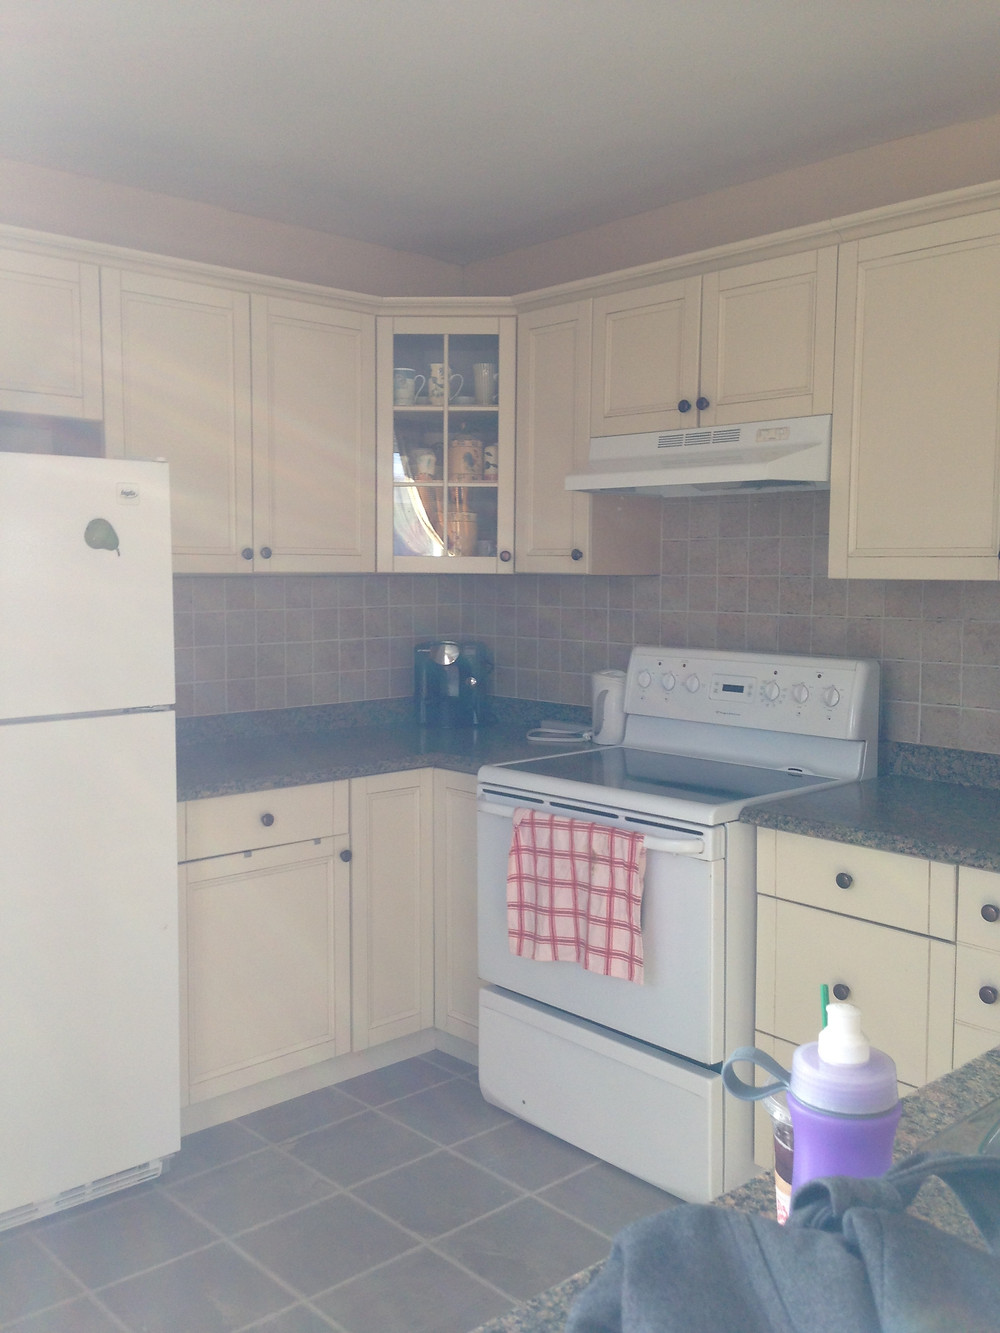 Before Photo of our kitchen renovation